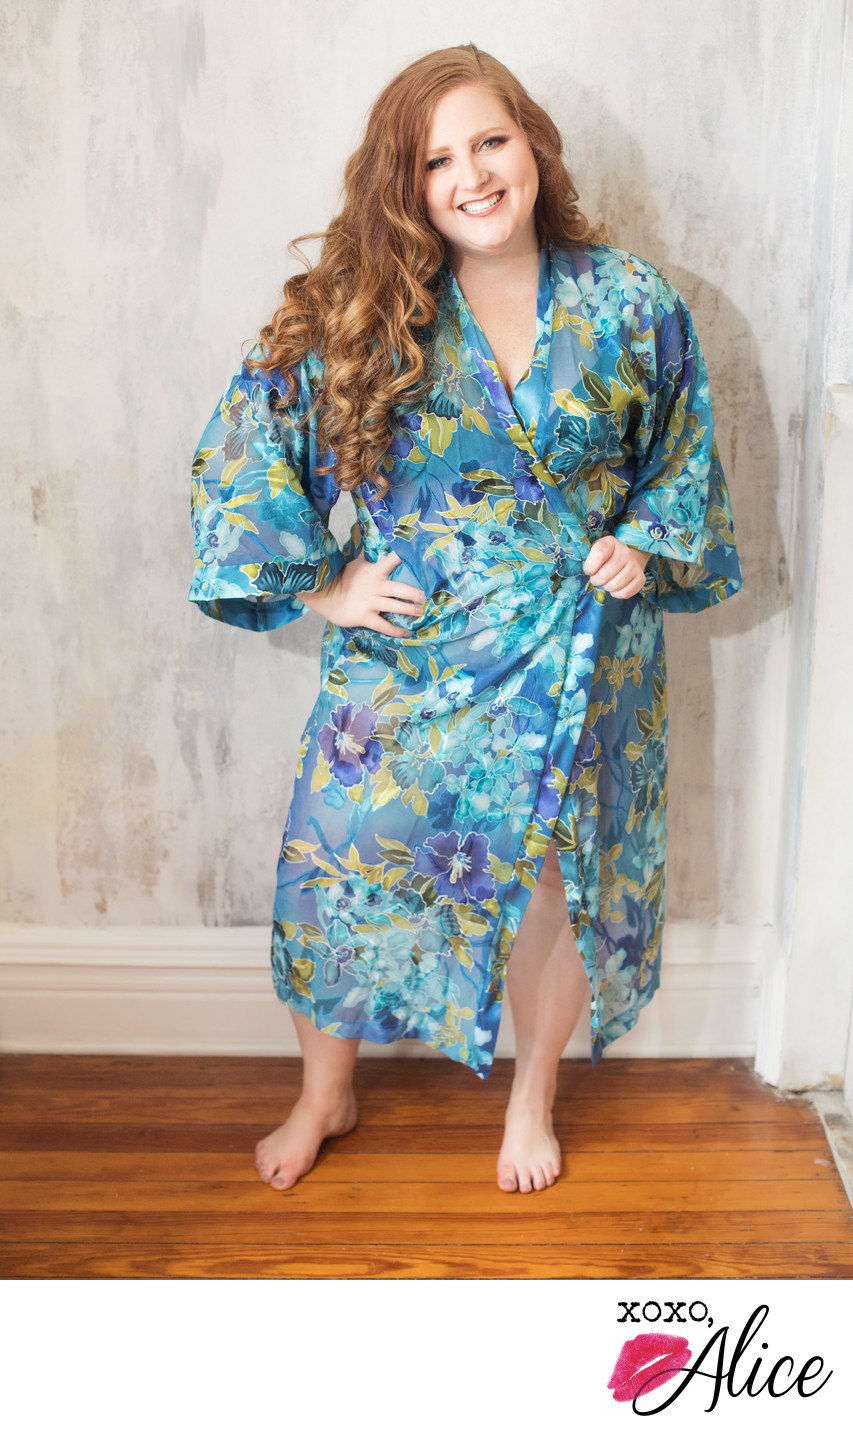 Borrow this beautiful Floral Robe for your glamour shot